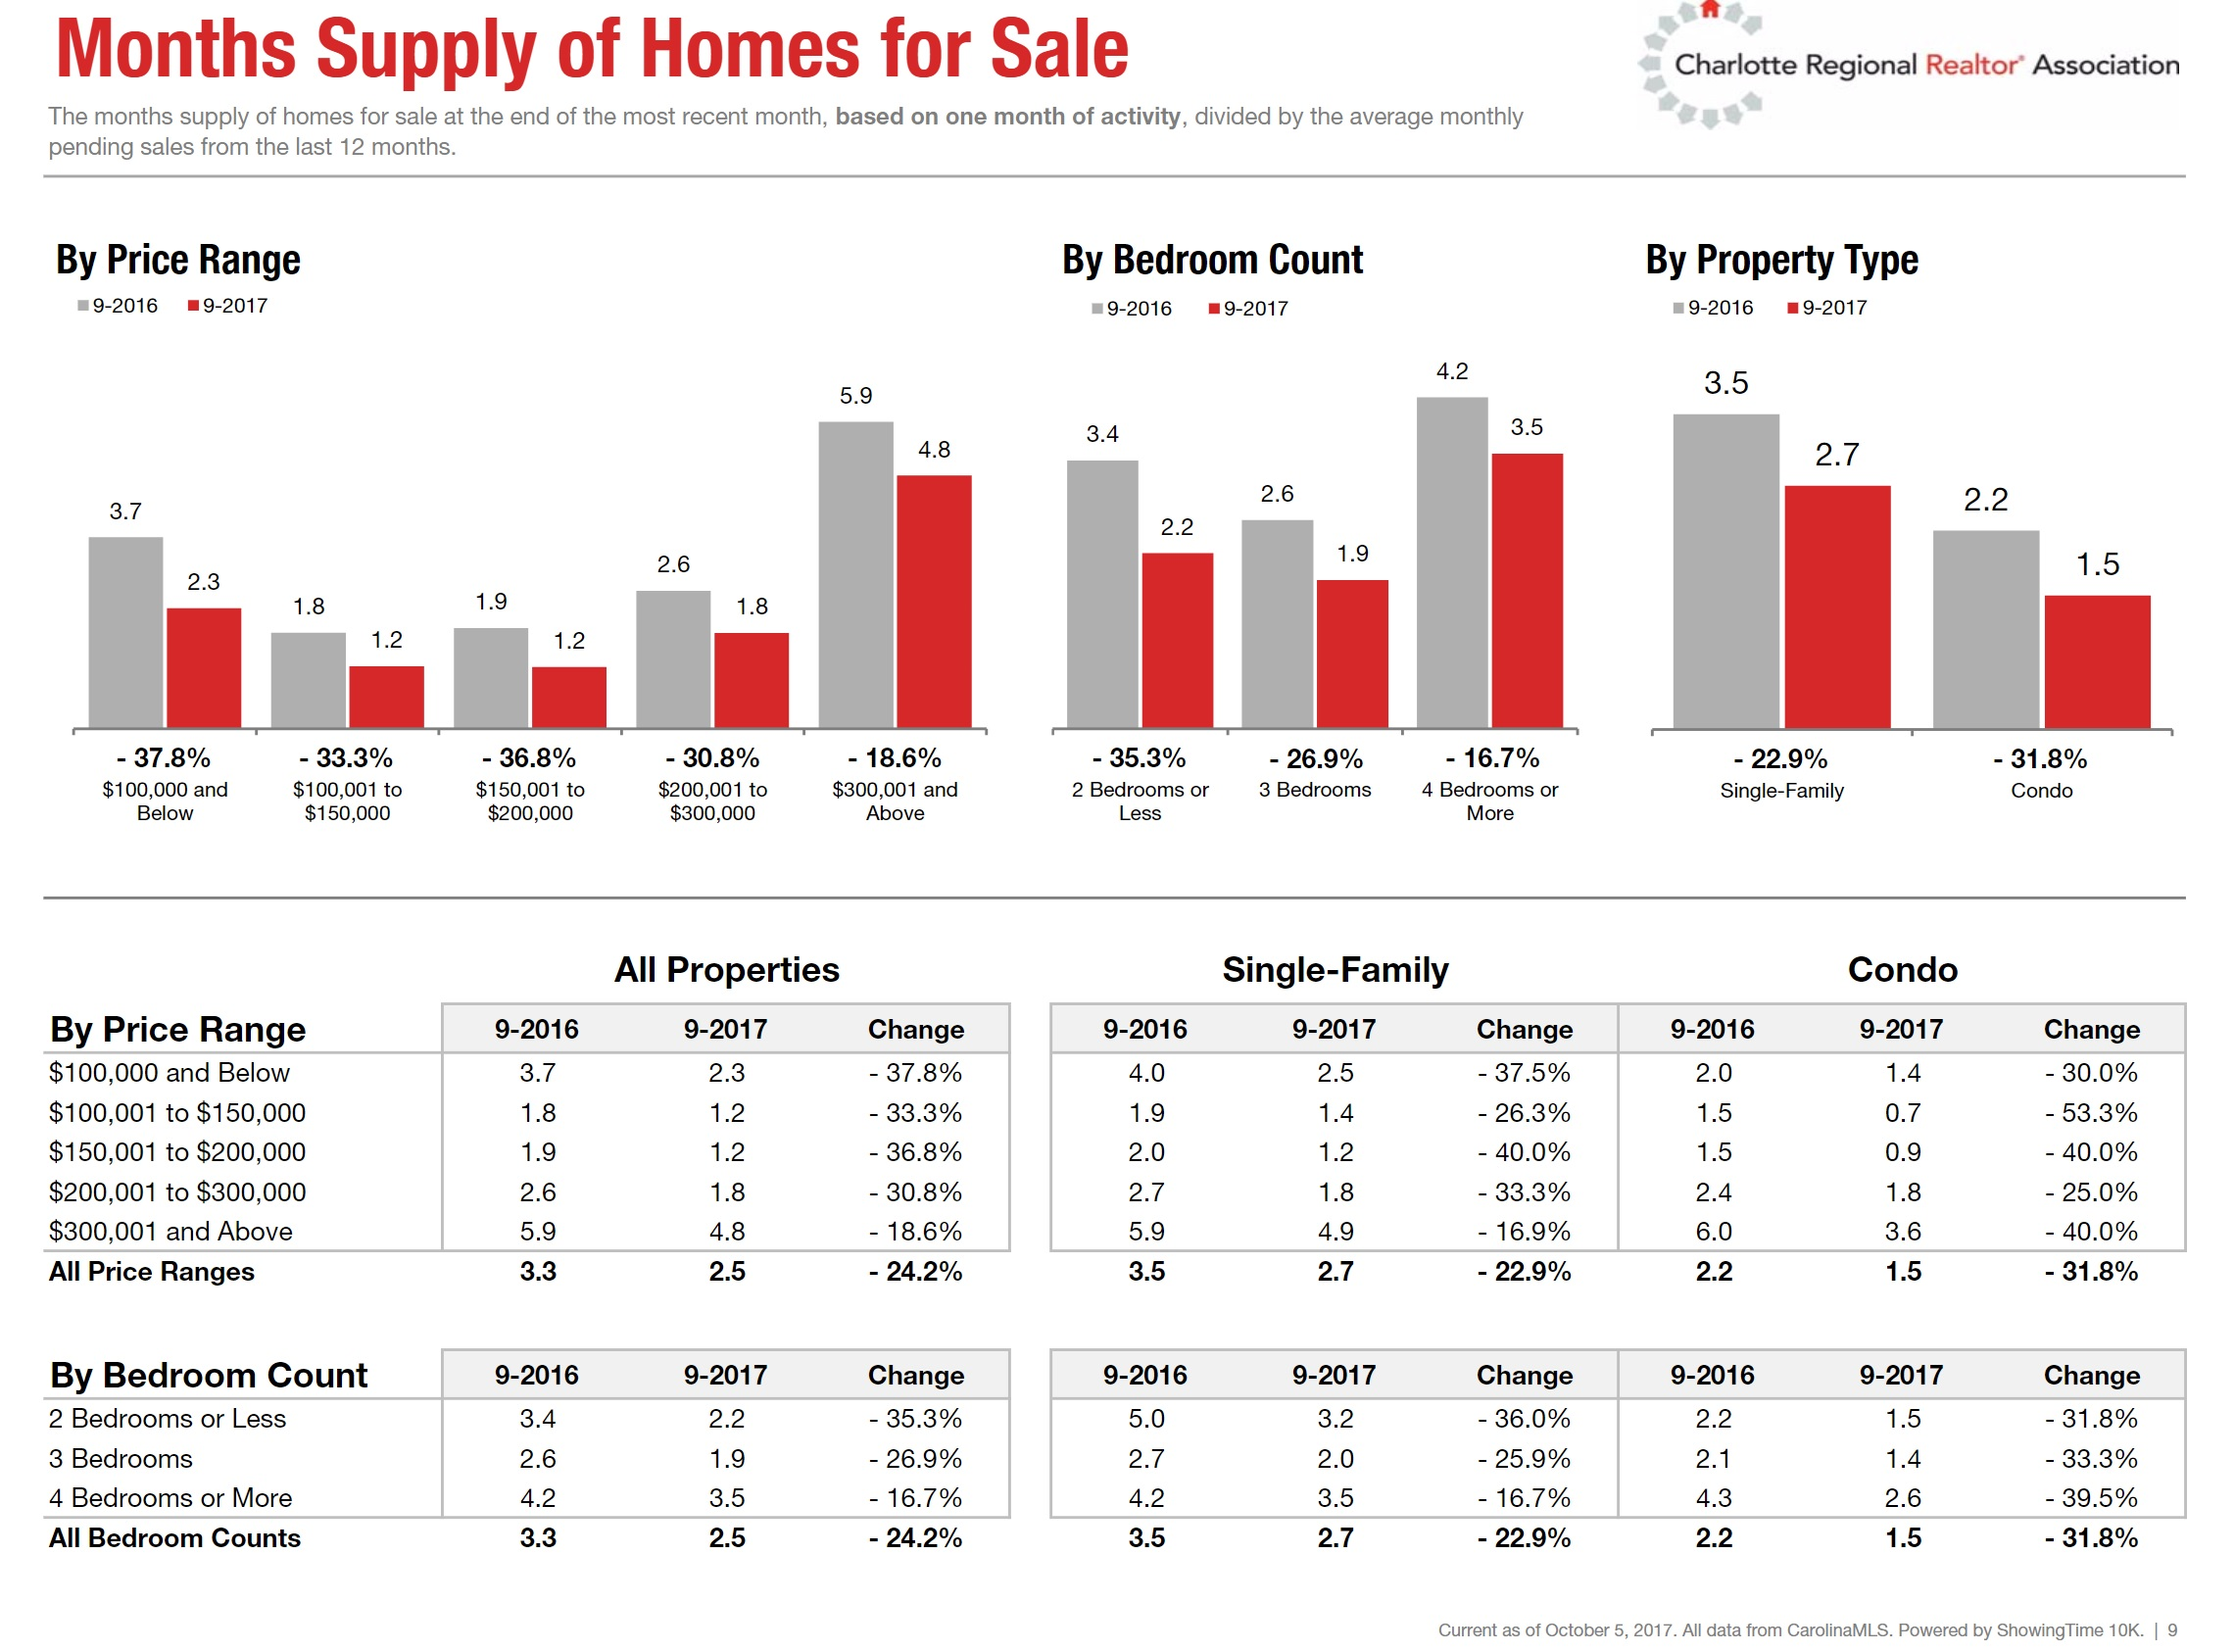 Charlotte Housing Market Change In Months Supply of Homes for Sale September 2017